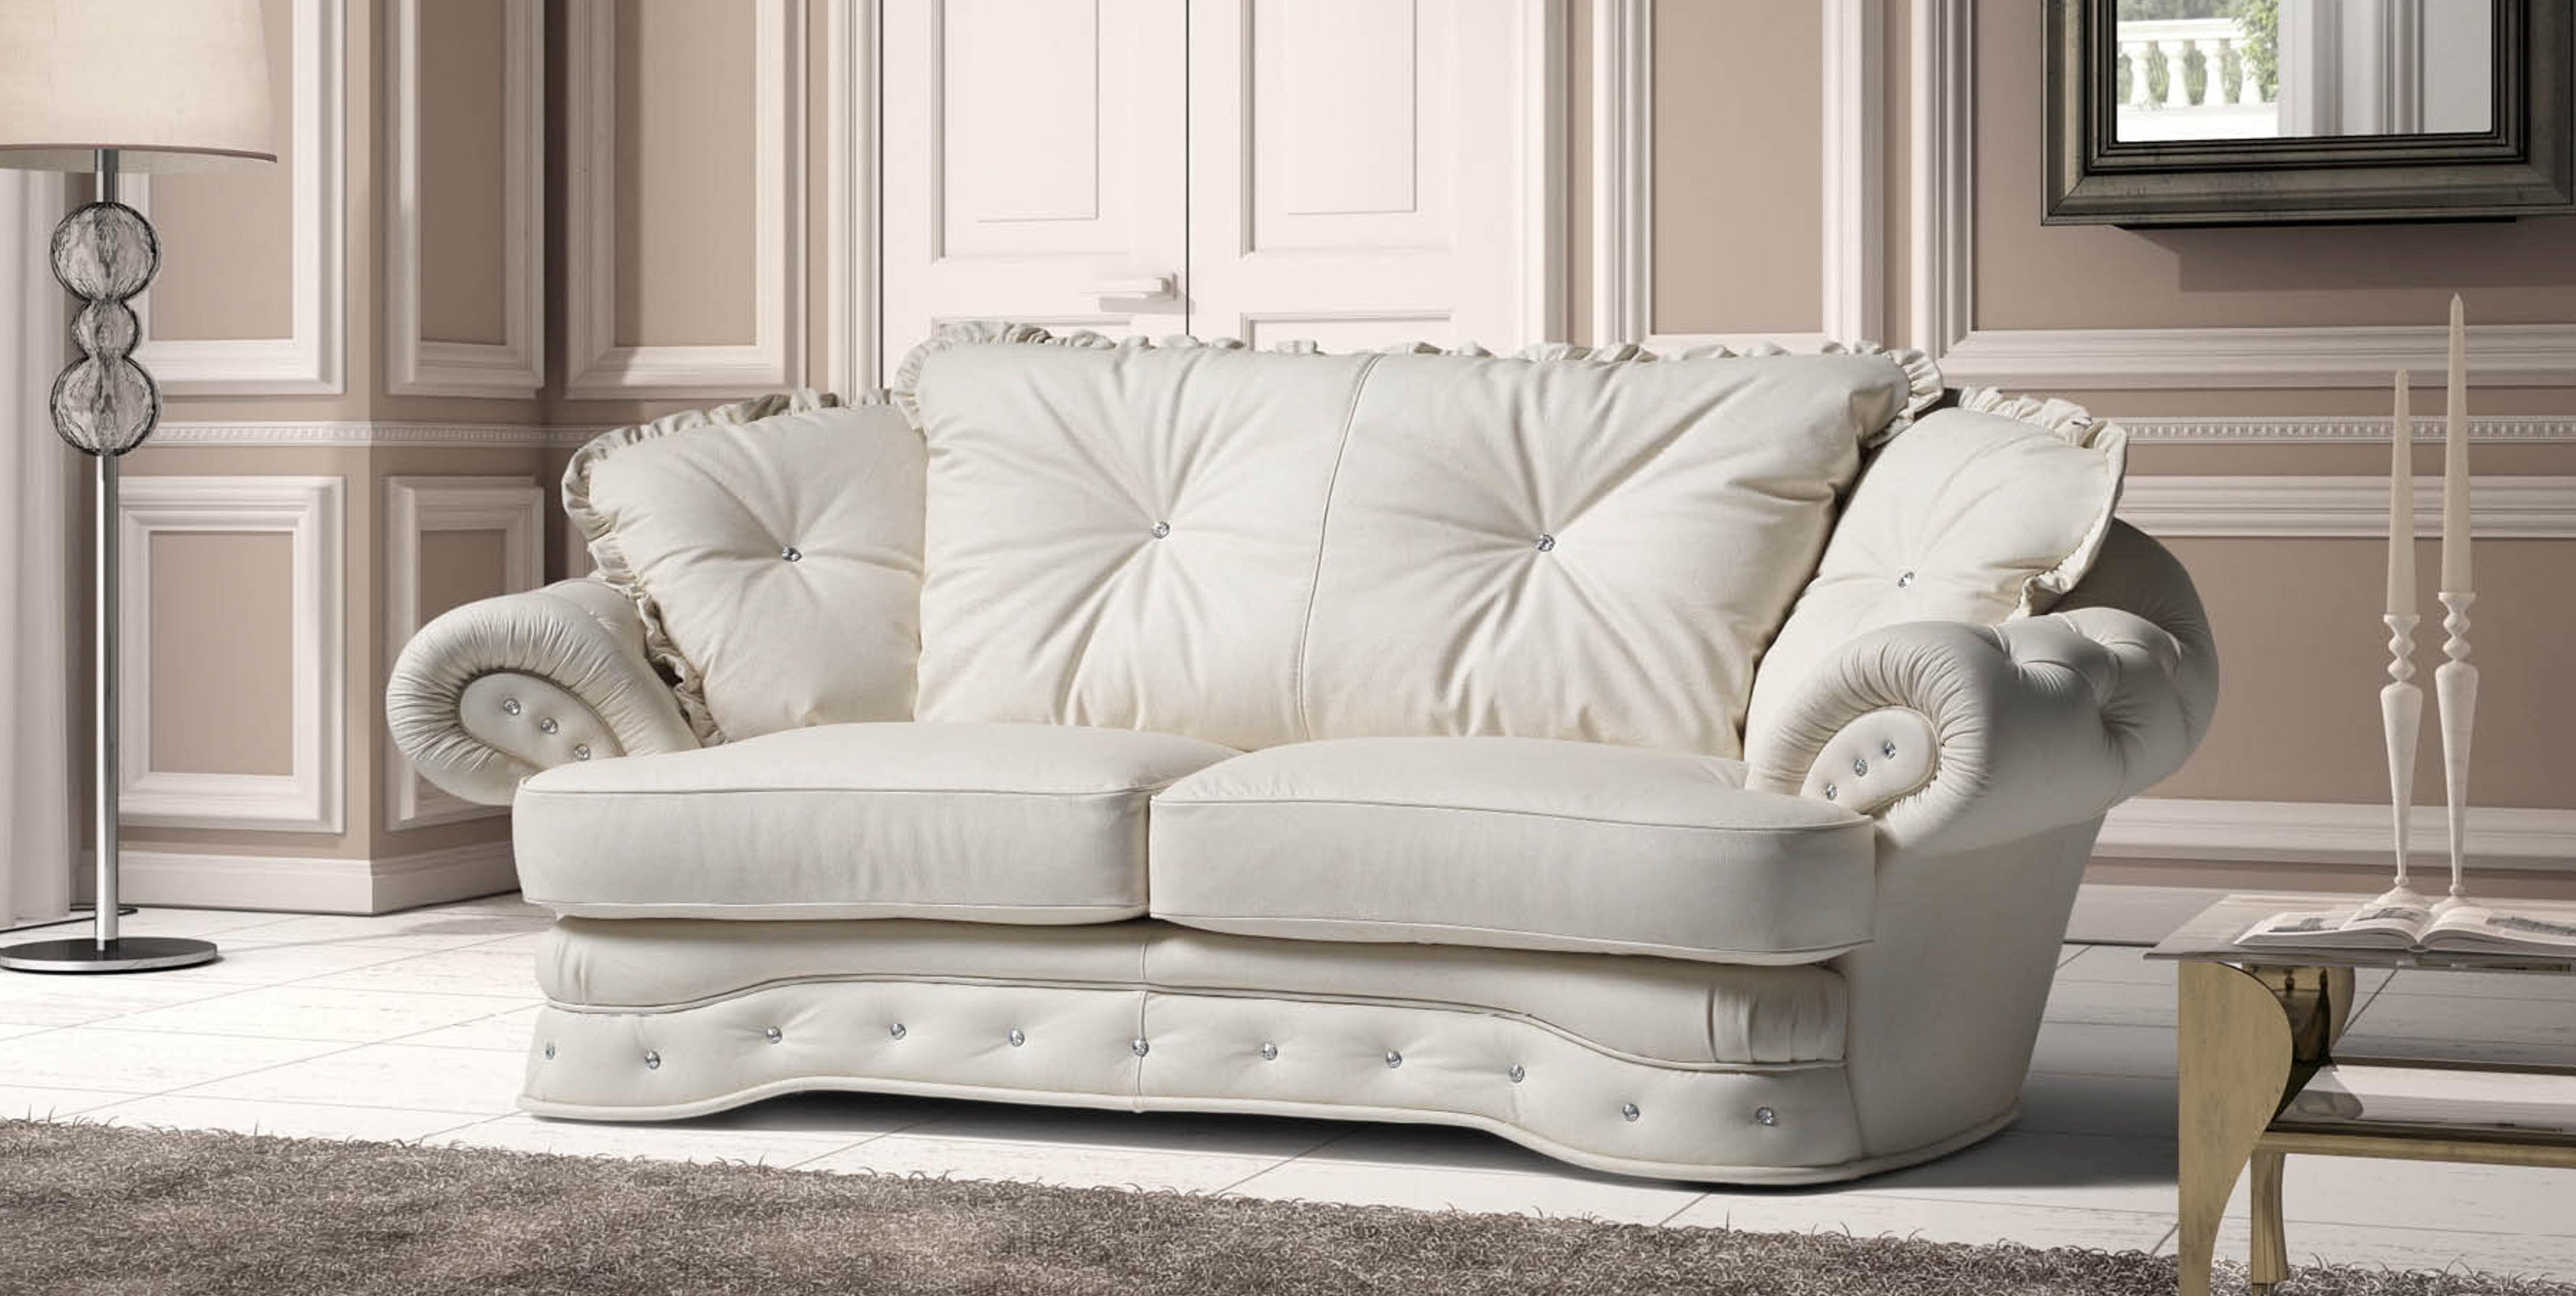 Luxury Leather Furniture in Chesterfield